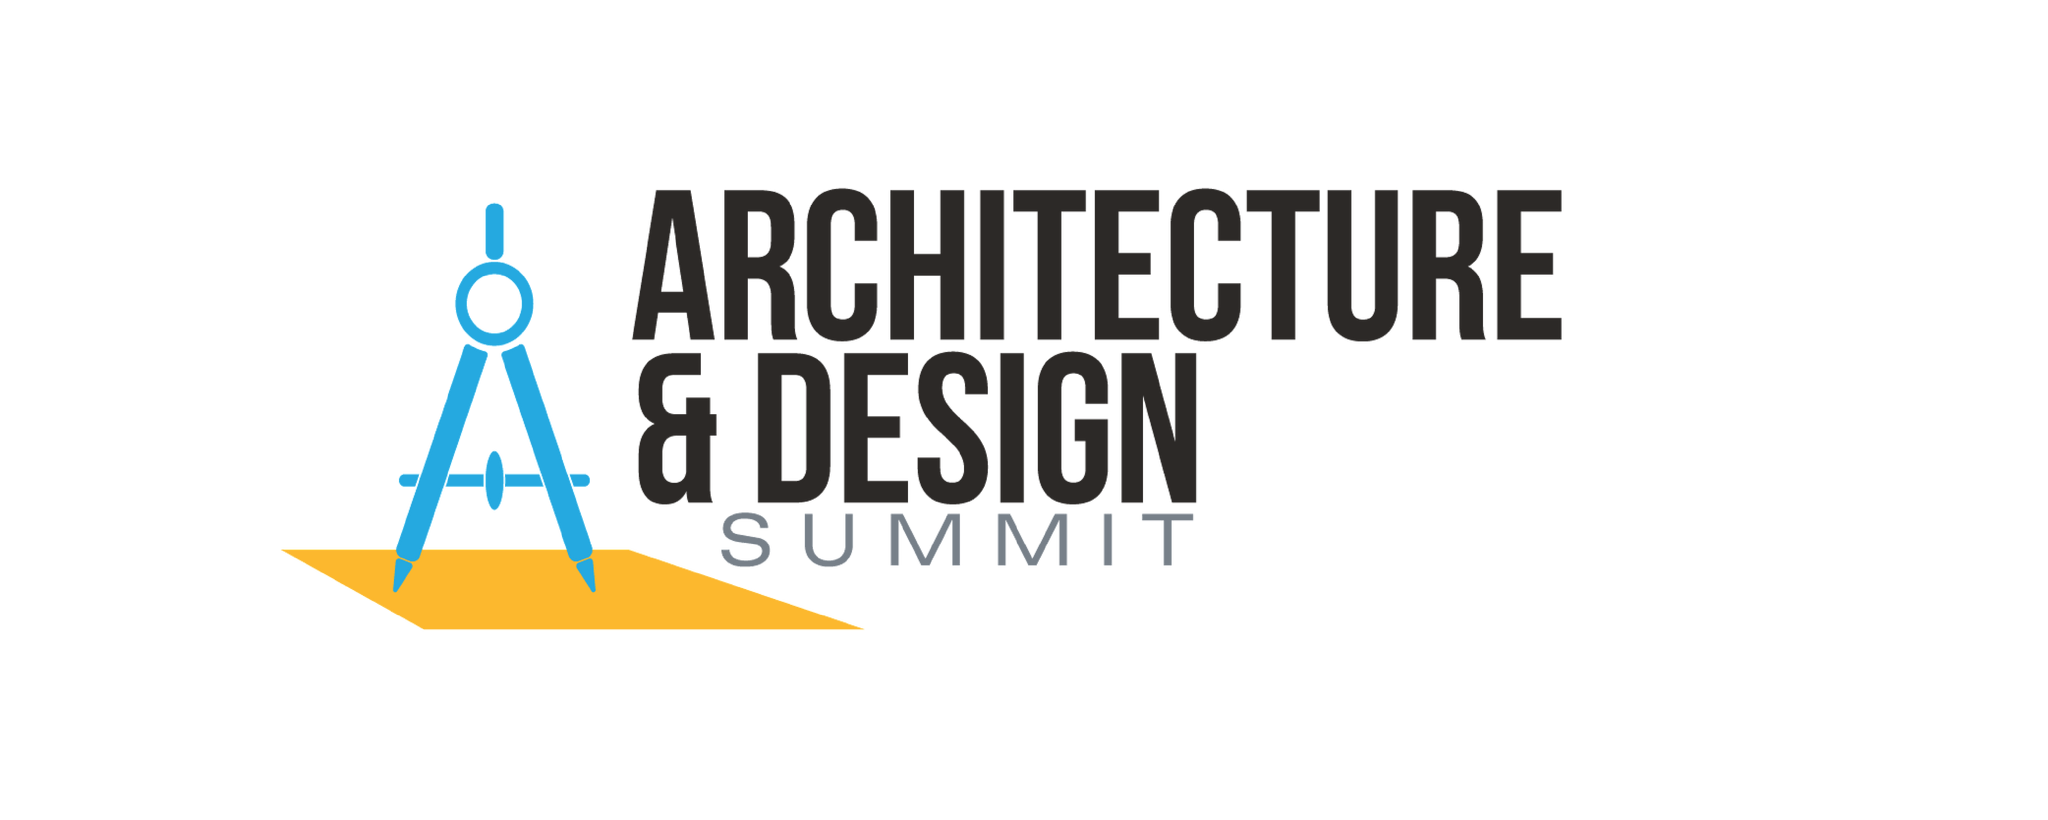 ARCHITECTURE & DESIGN SUMMIT